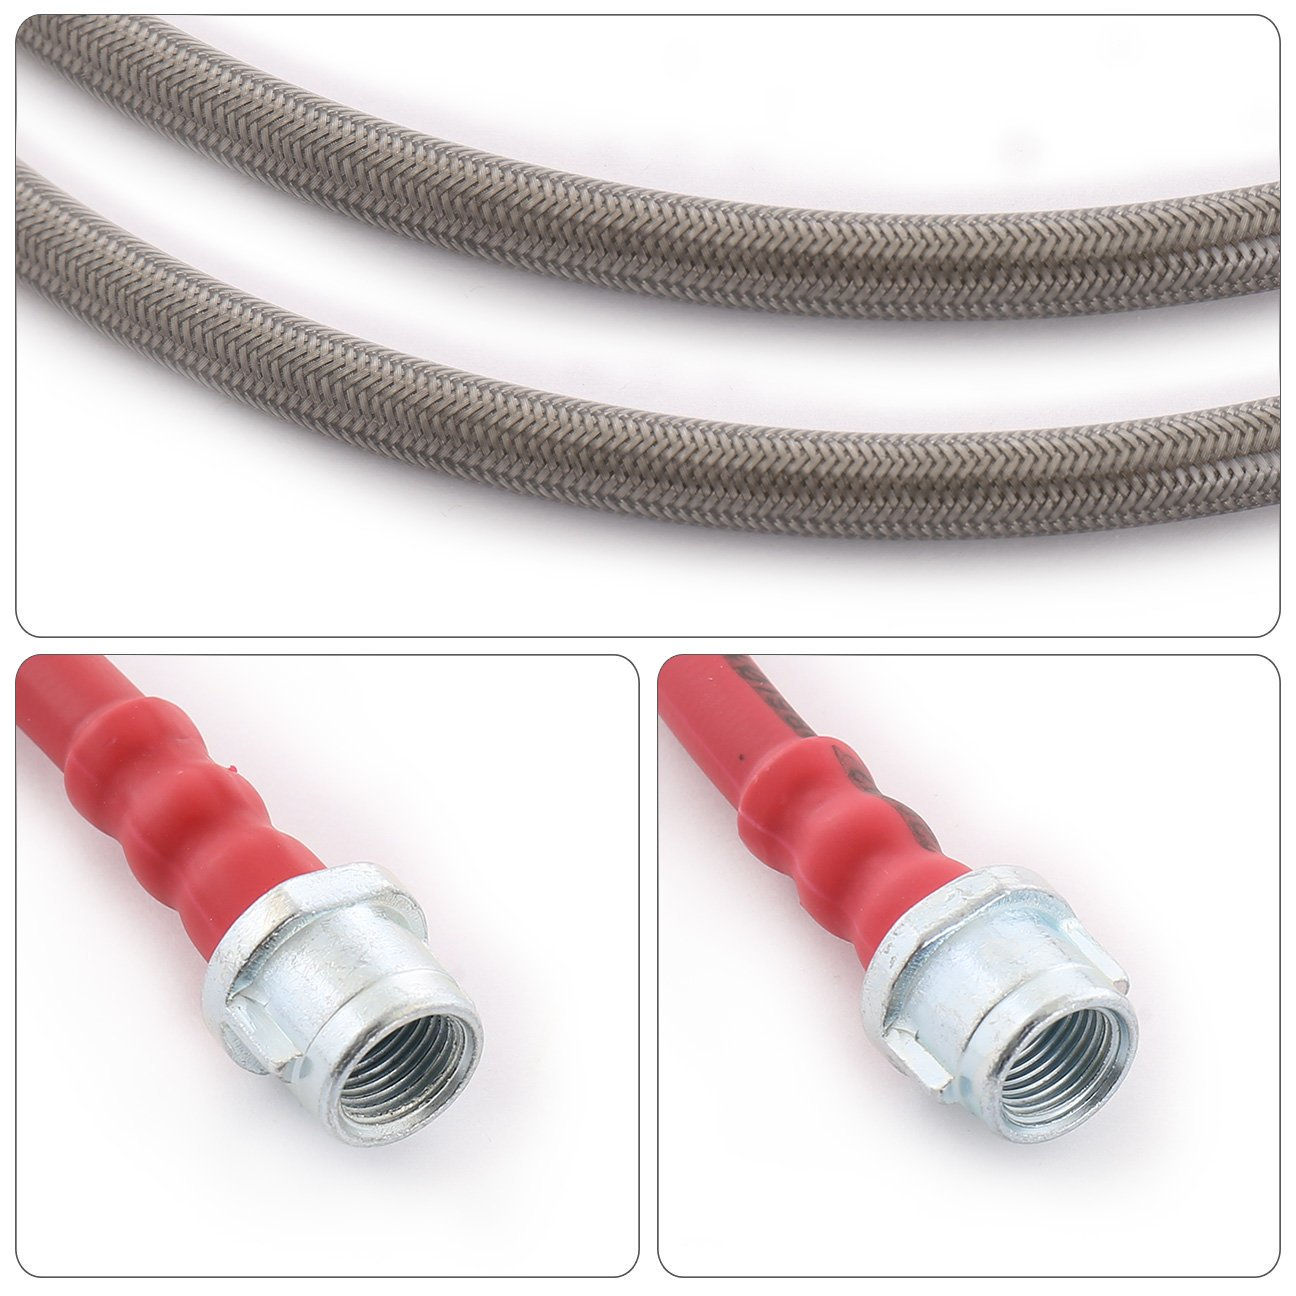 For Porsche 911 996 Carrera Euro Front Rear Stainless Steel Braided Oil Brake Line Cable Hose Red End Cap